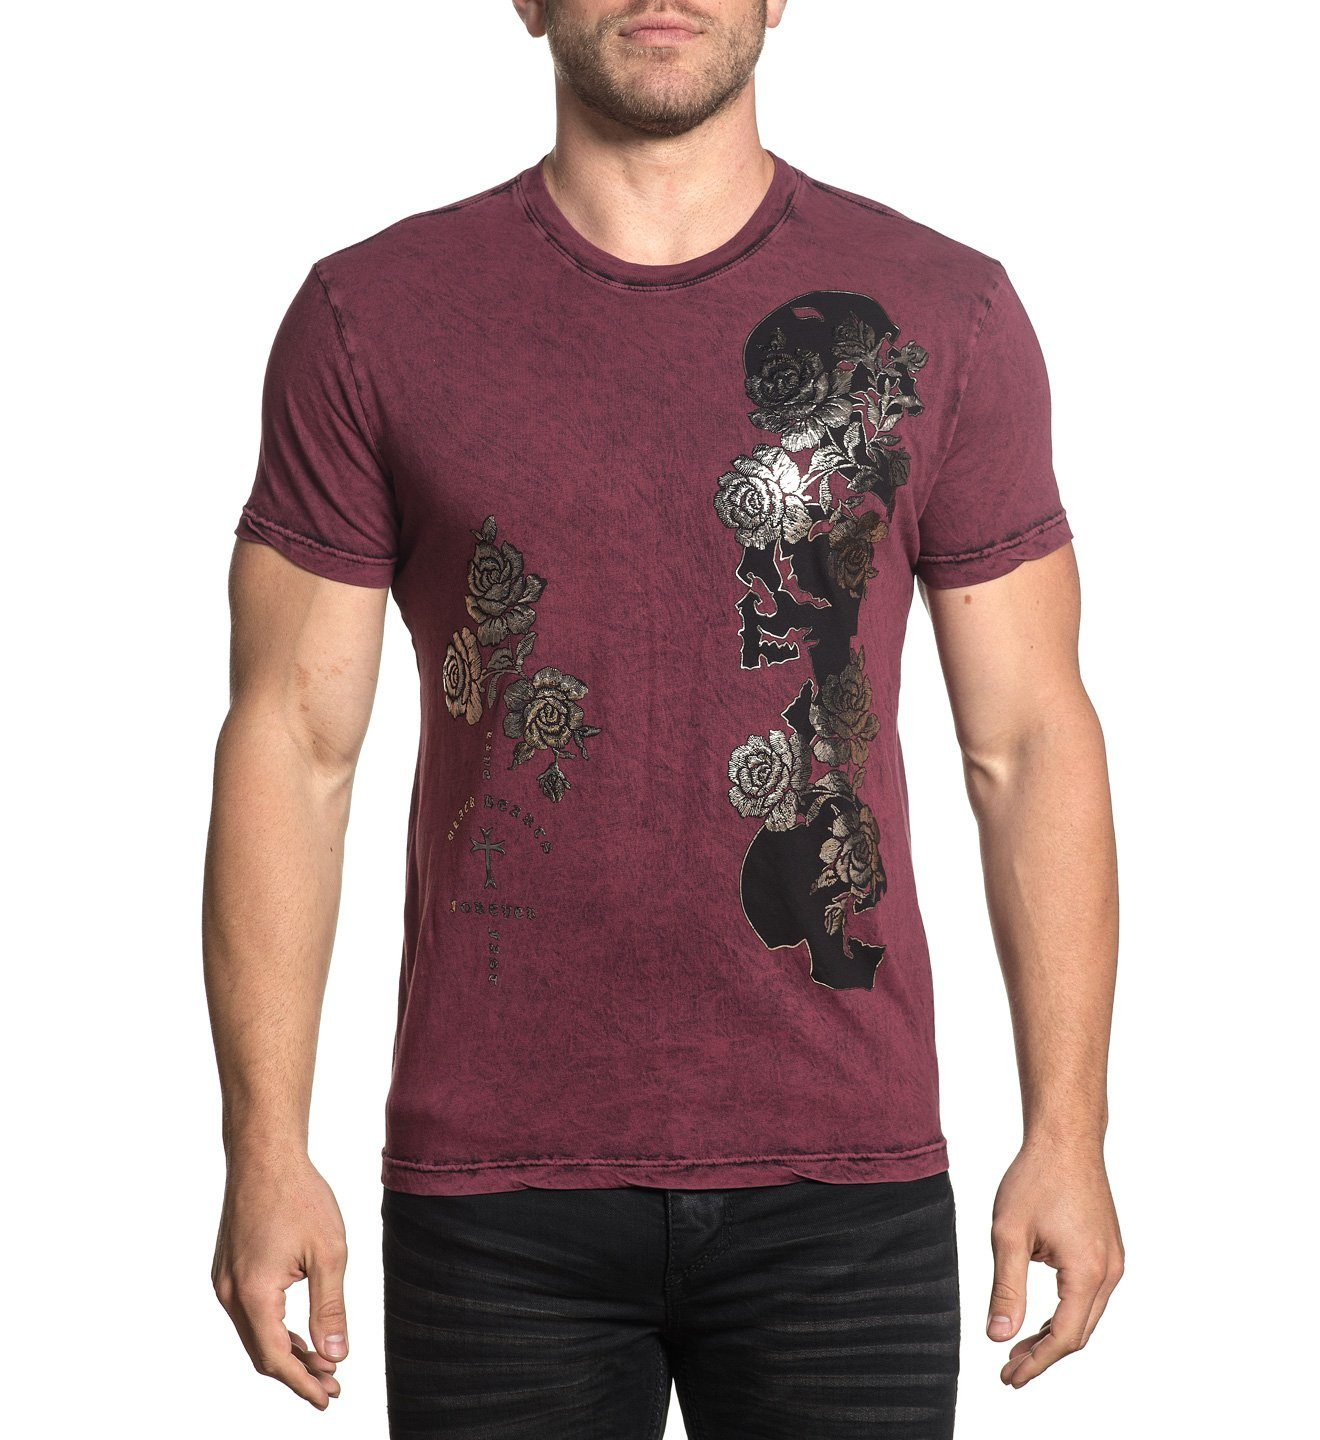 Slithering Souls - Mens Short Sleeve Tees - Affliction Clothing